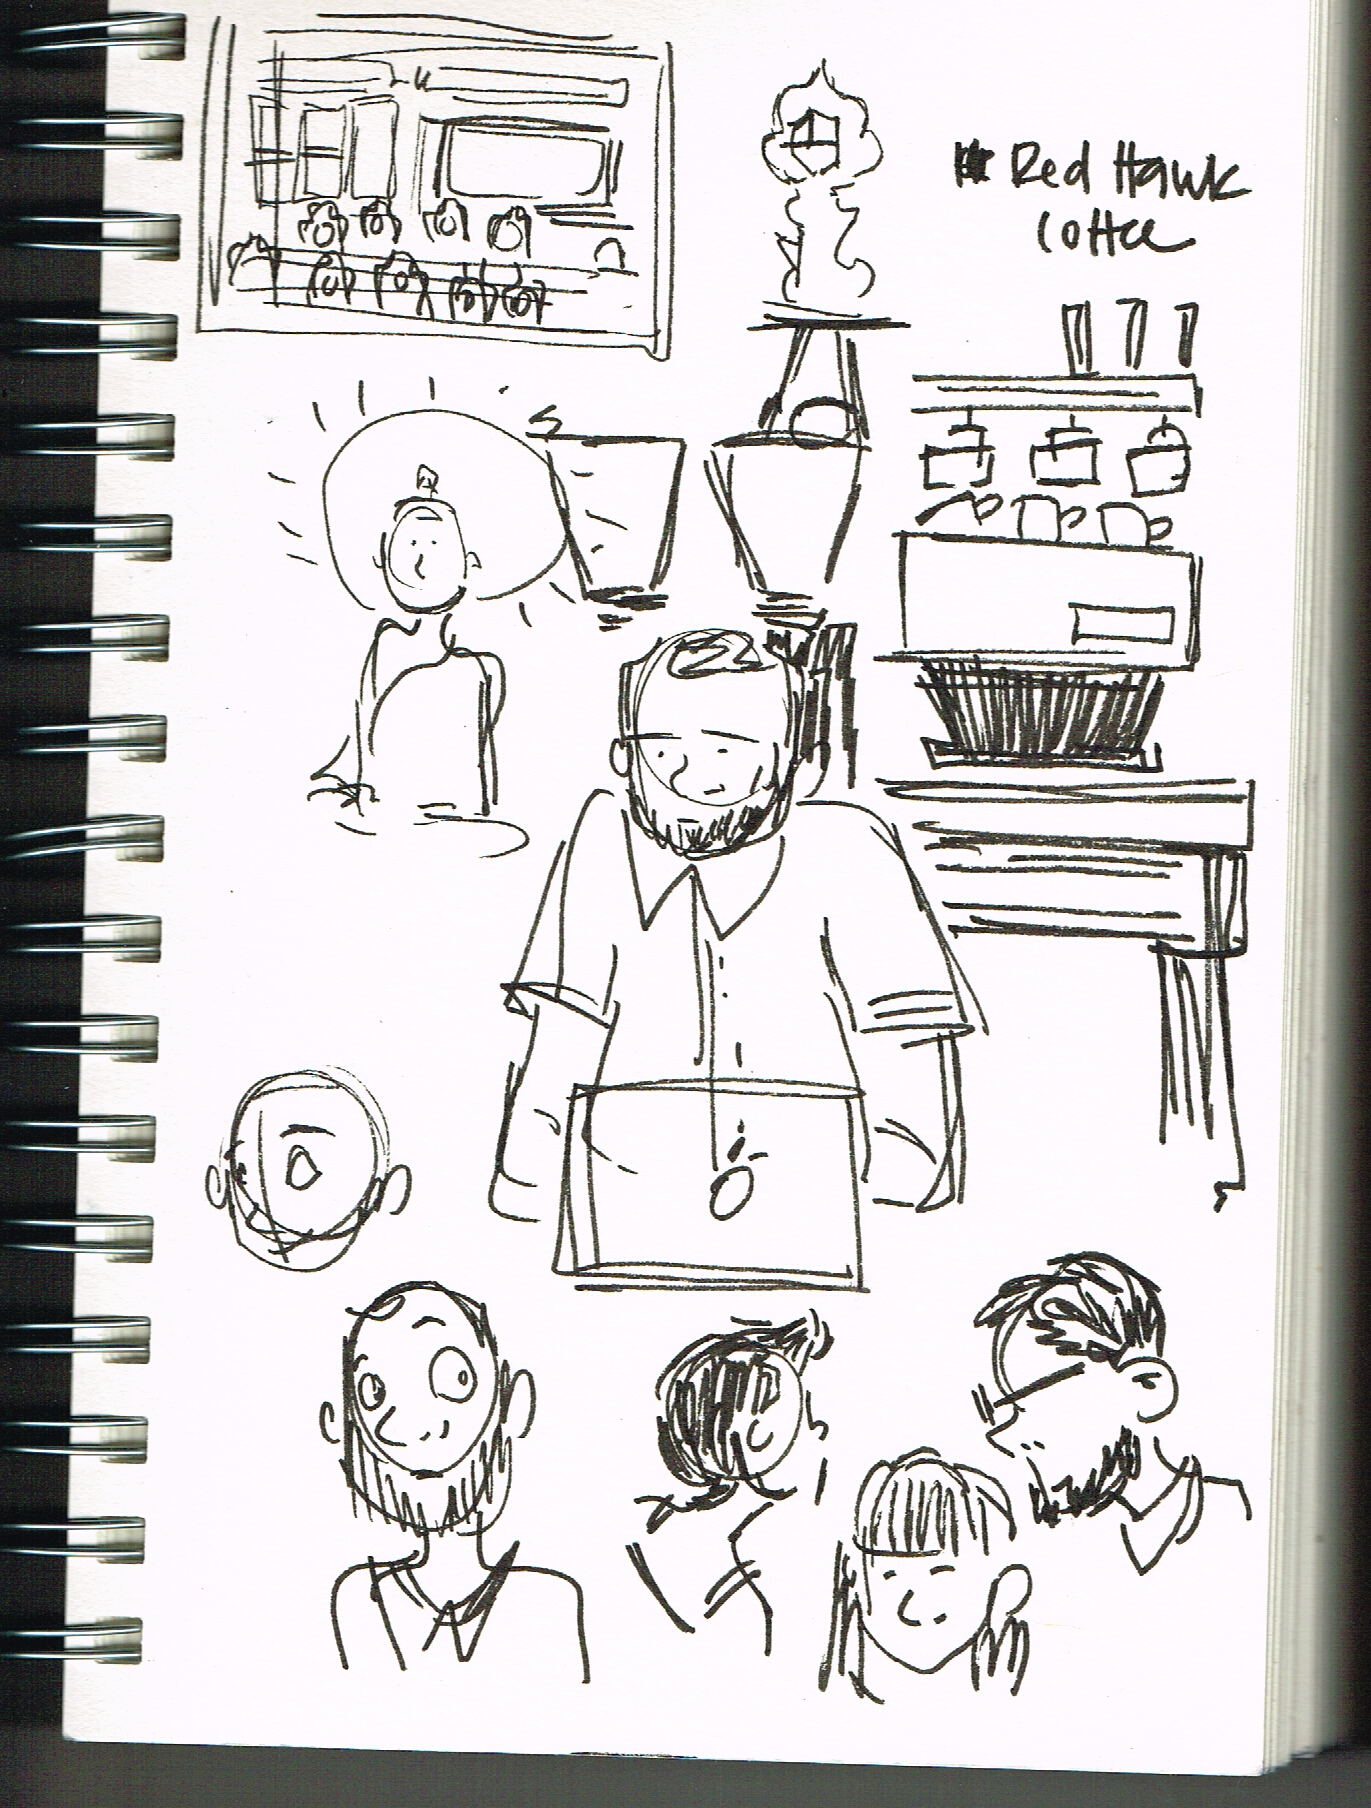 vacation_sketchbook_009.jpg